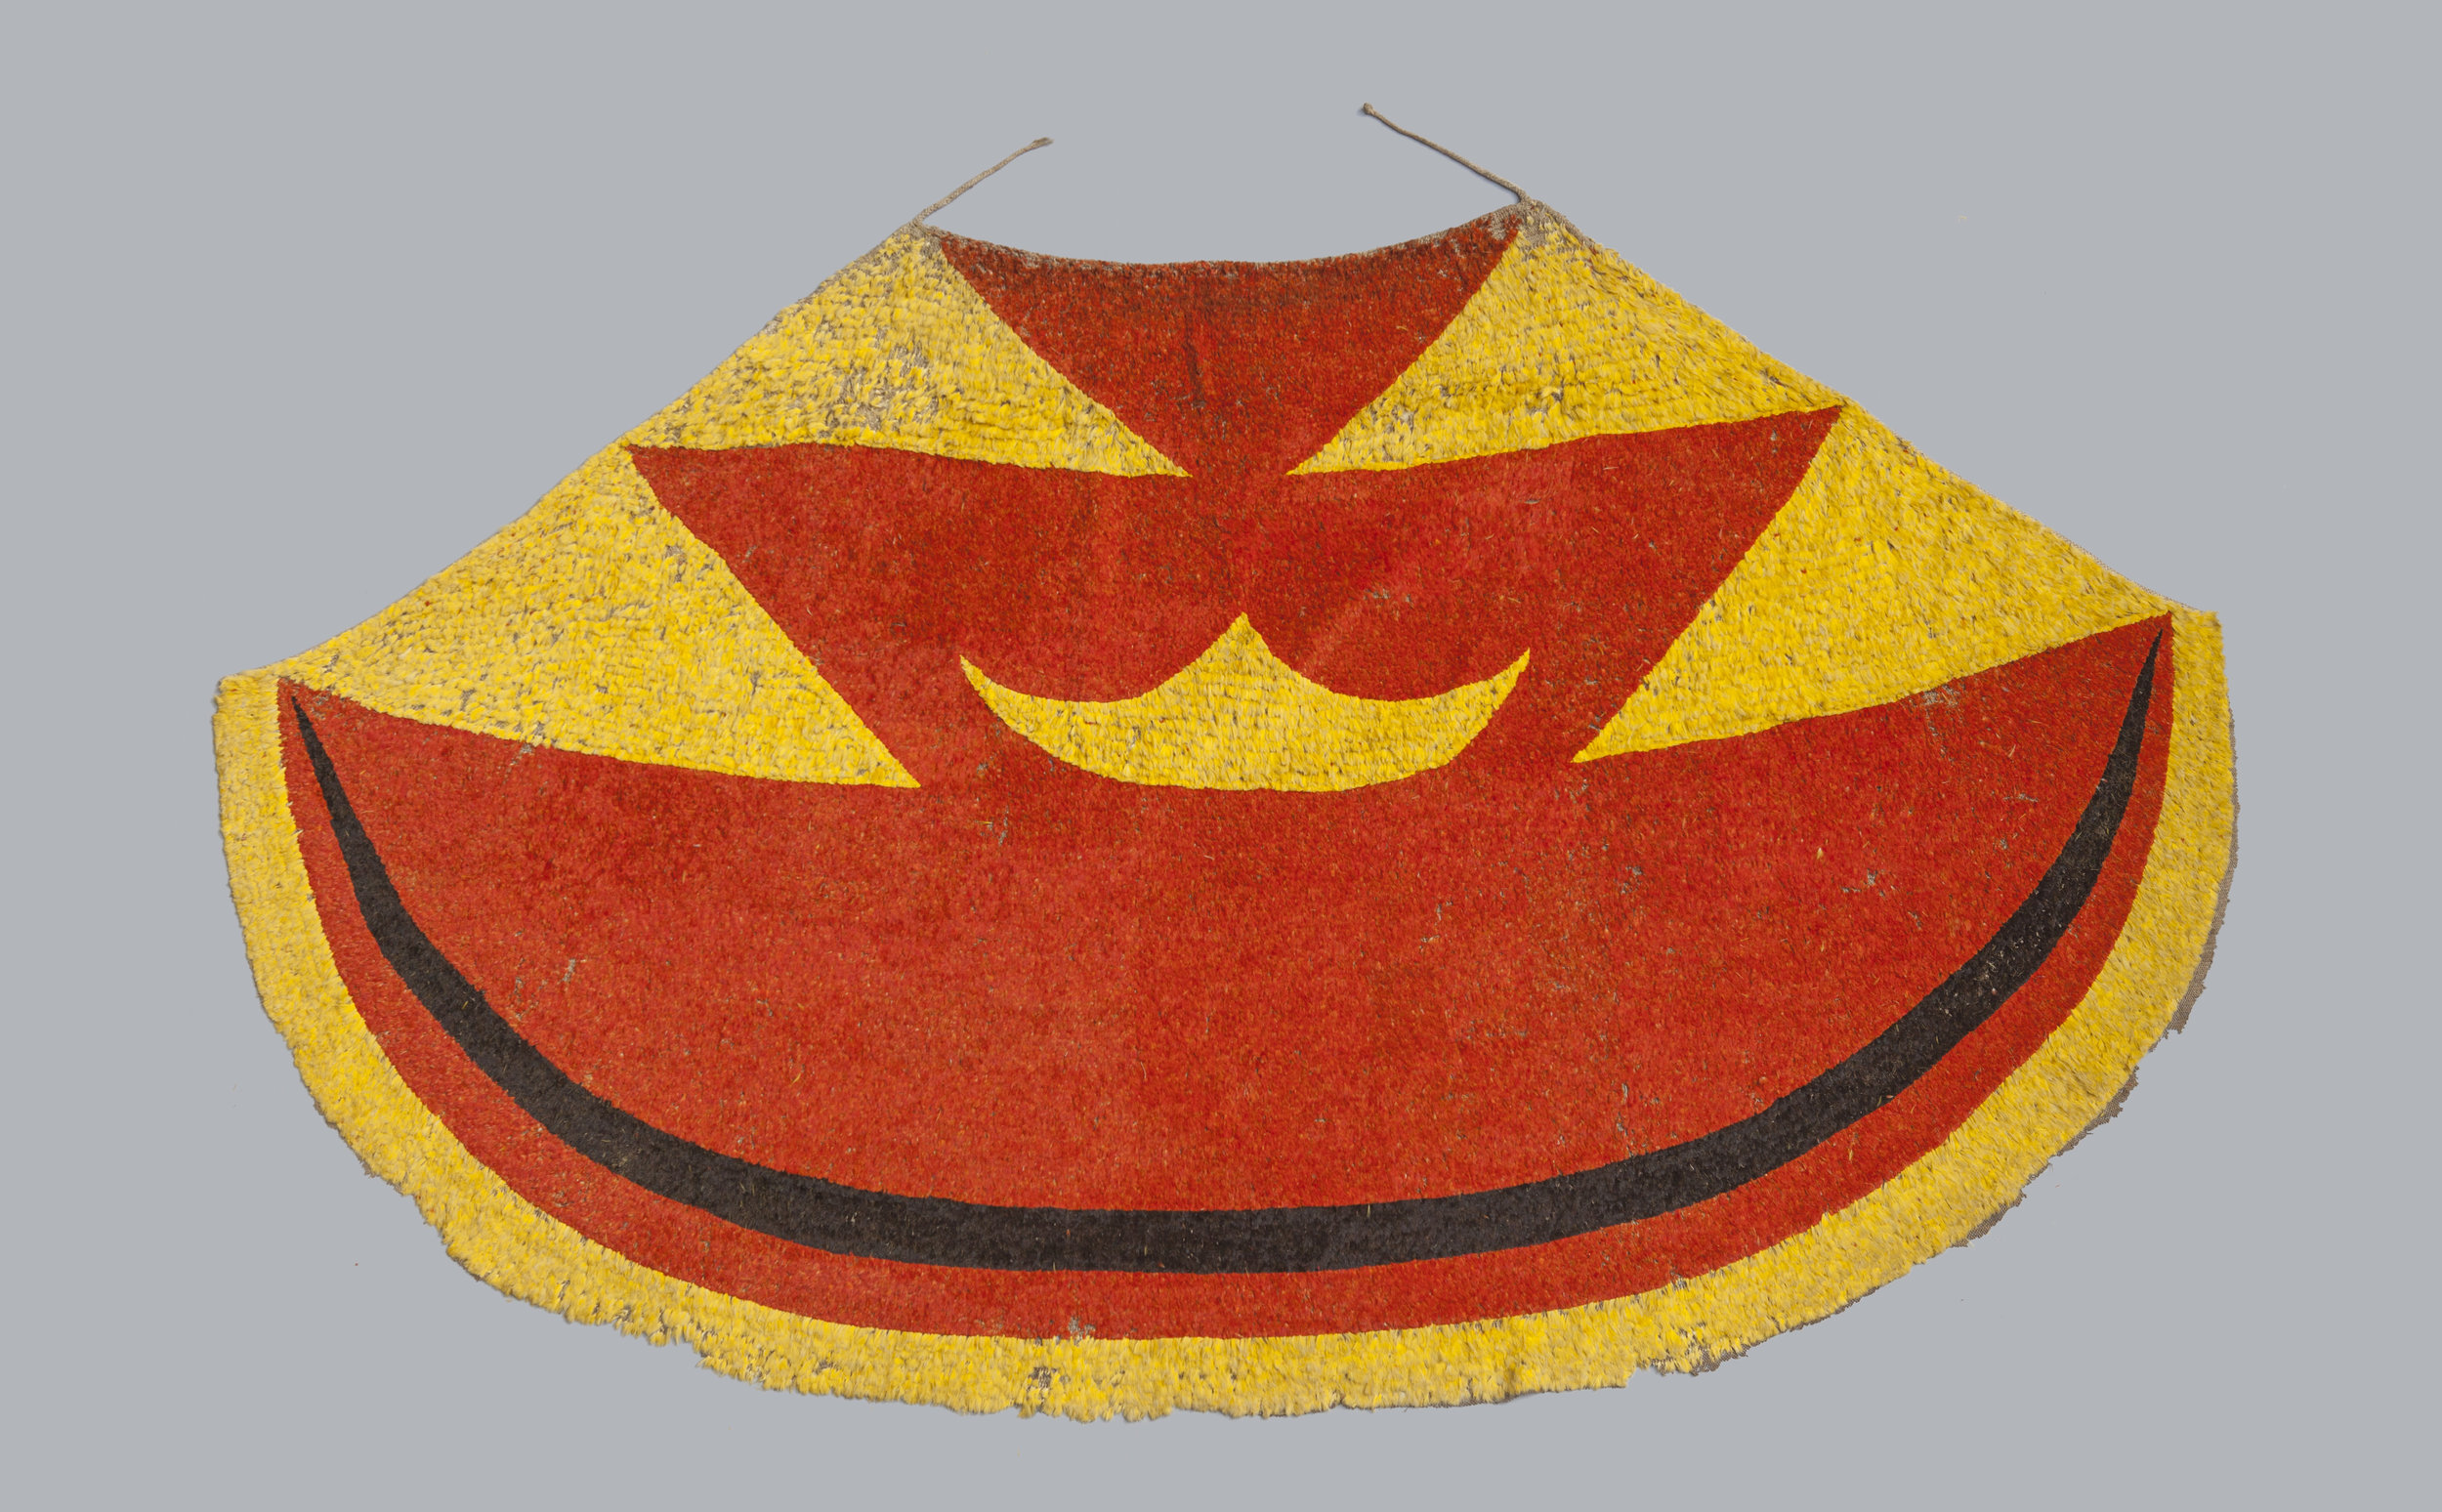 Ahu ula (feather cloak) belonging to Liholoho, Kamehameha II, Early 19th century. Feathers, fibre, painted barkcloth (on reverse). 207 cm Museum of Archaeology and Anthropology, University of Cambridge (PHOTO: Royal Academy of Arts & University of Cambridge)